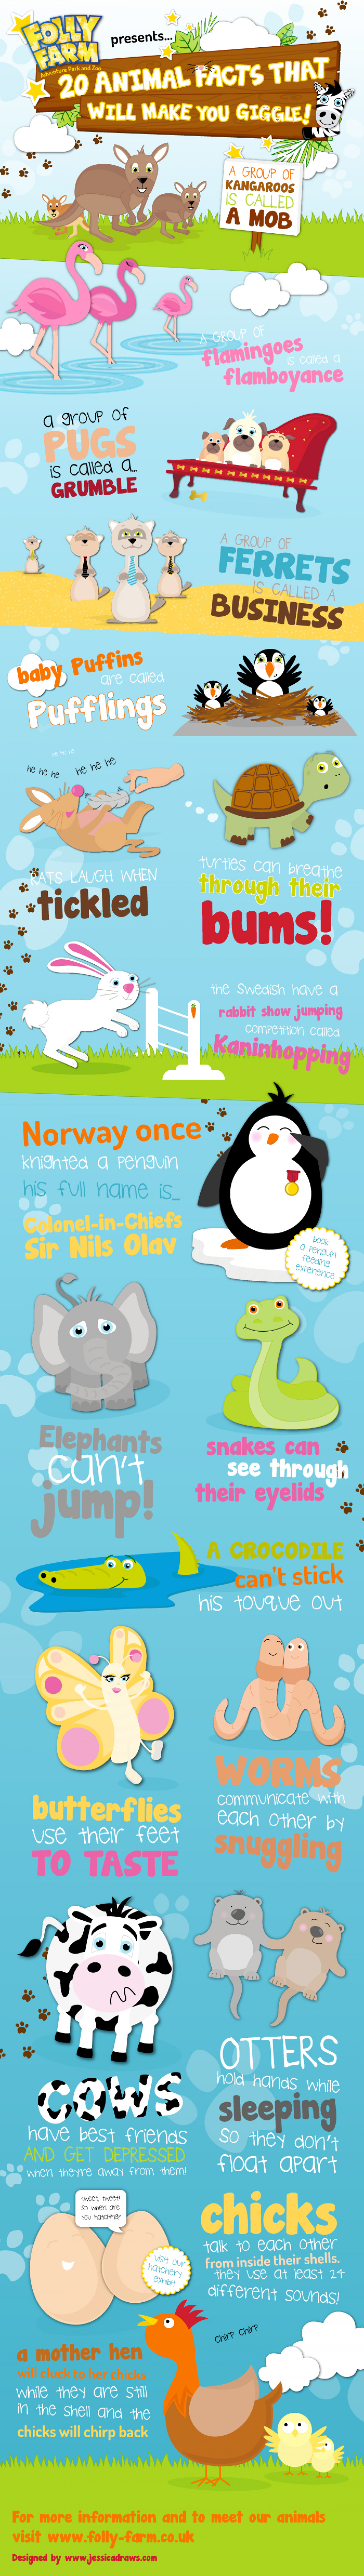 20 Animal Facts That Will Make You Giggle Infographic